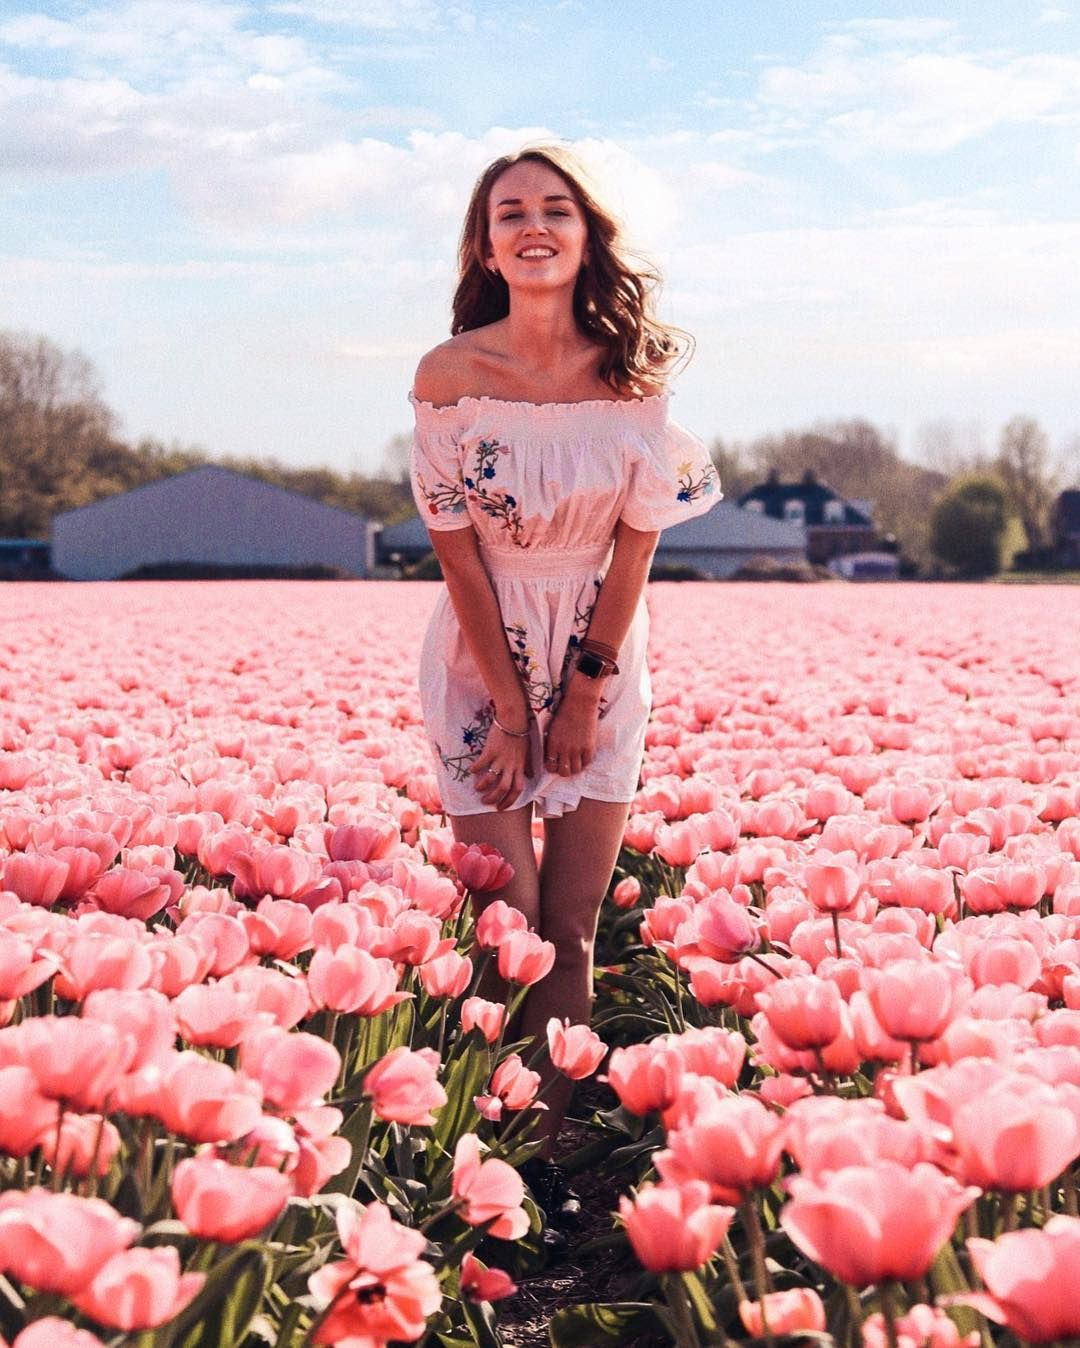 Can't stop with tulips fields!! Just look how beautiful they